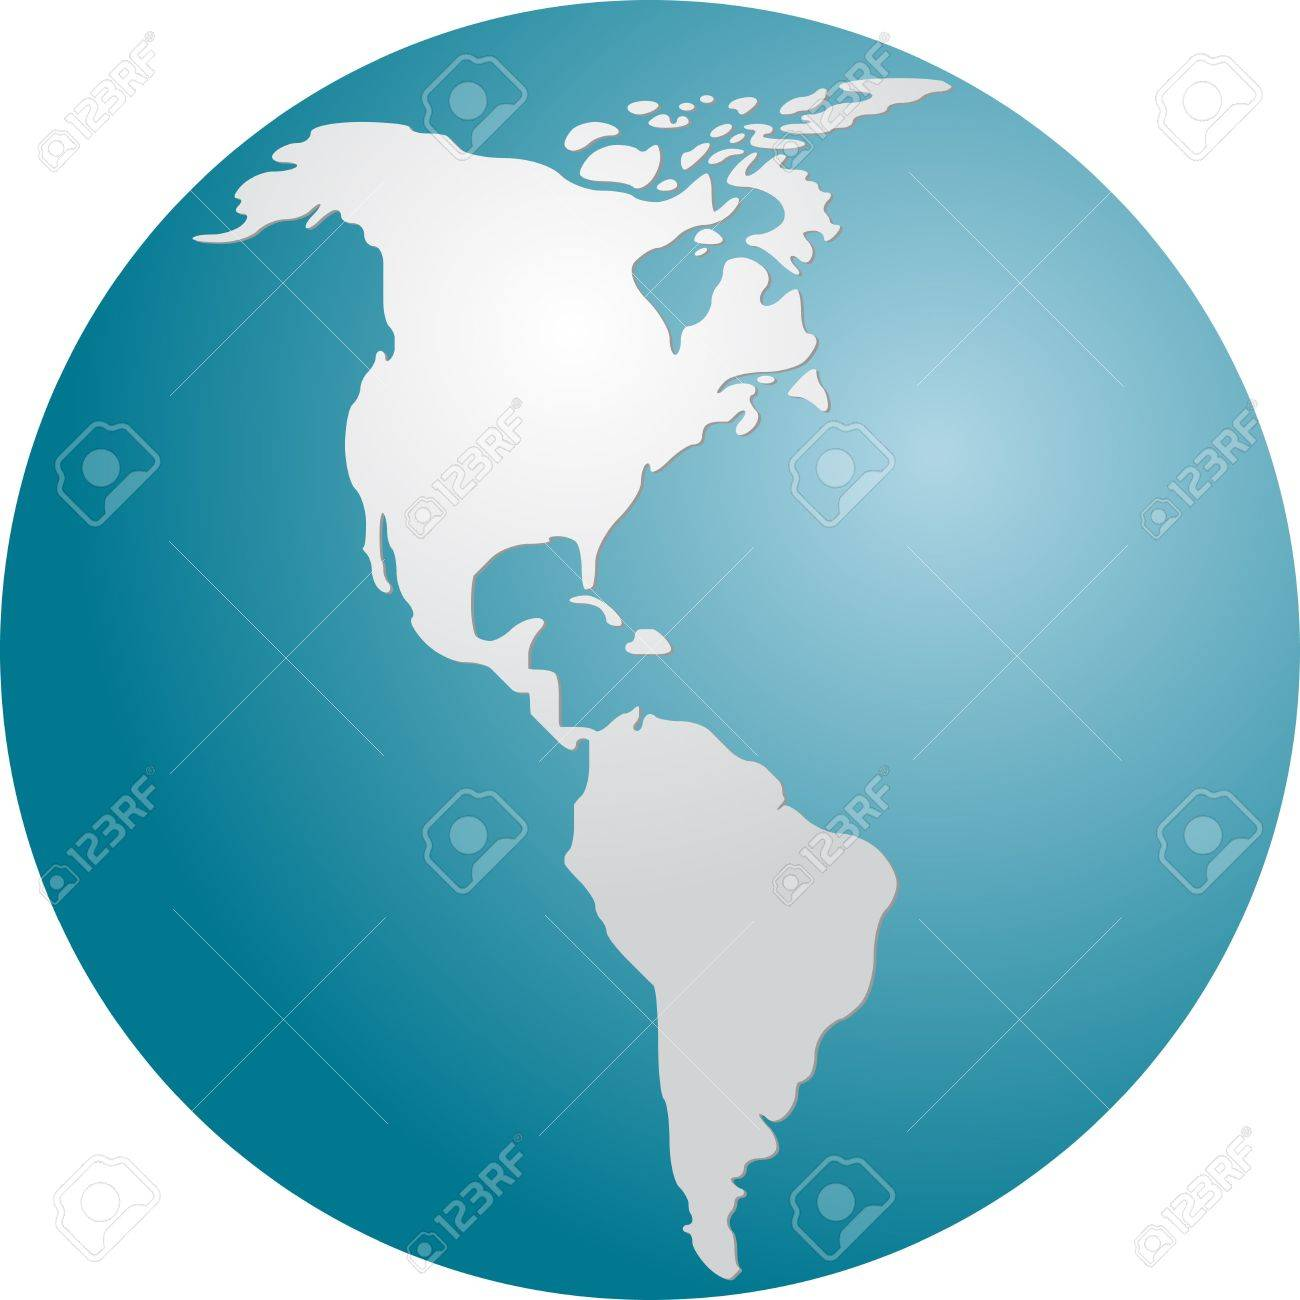 globe map illustration of the americas continents stock photo